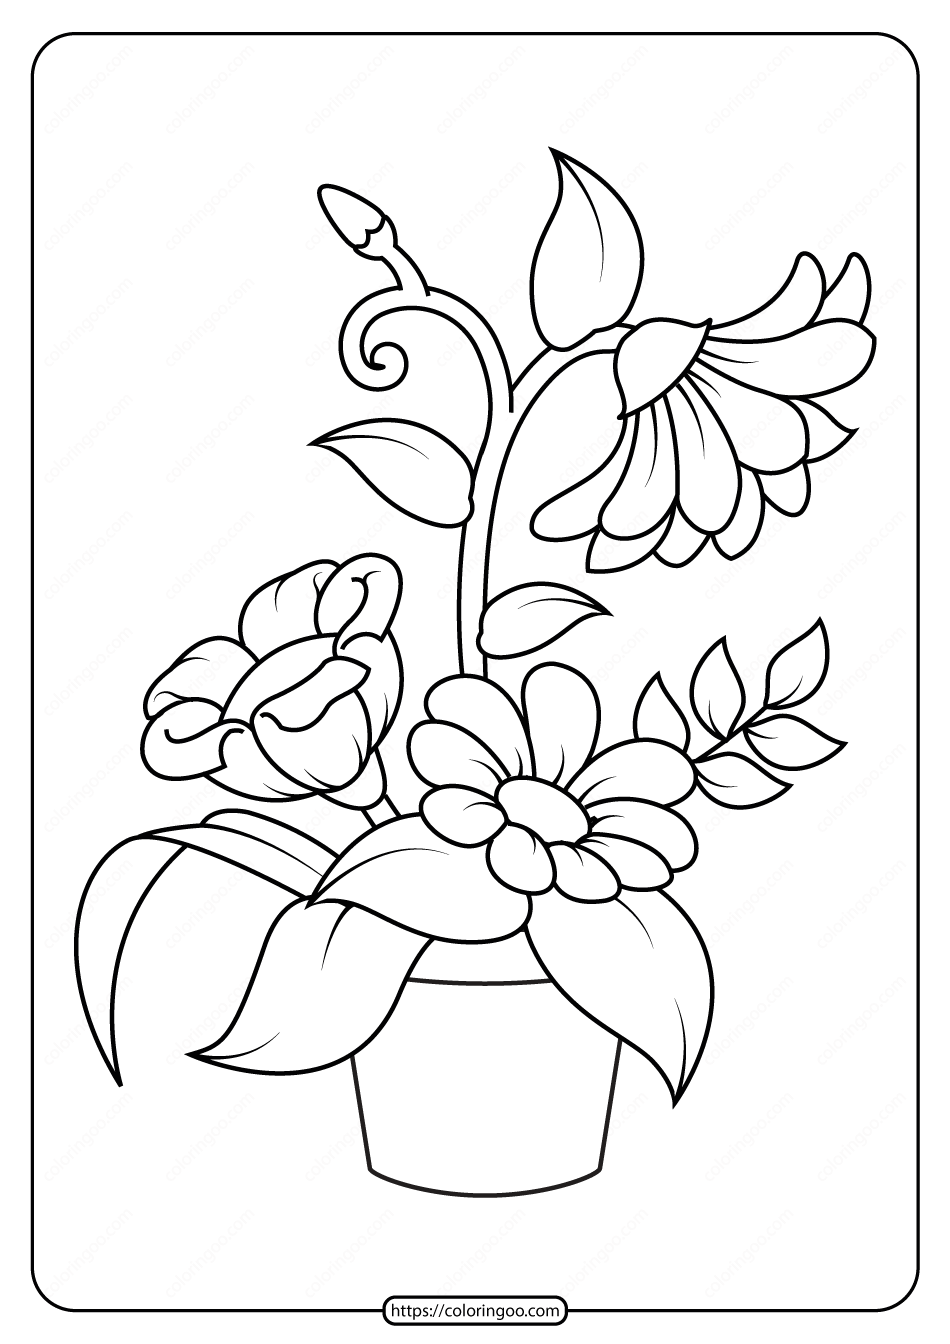 coloring image of a flower free printable flowers pdf coloring pages 10 flower a image coloring of